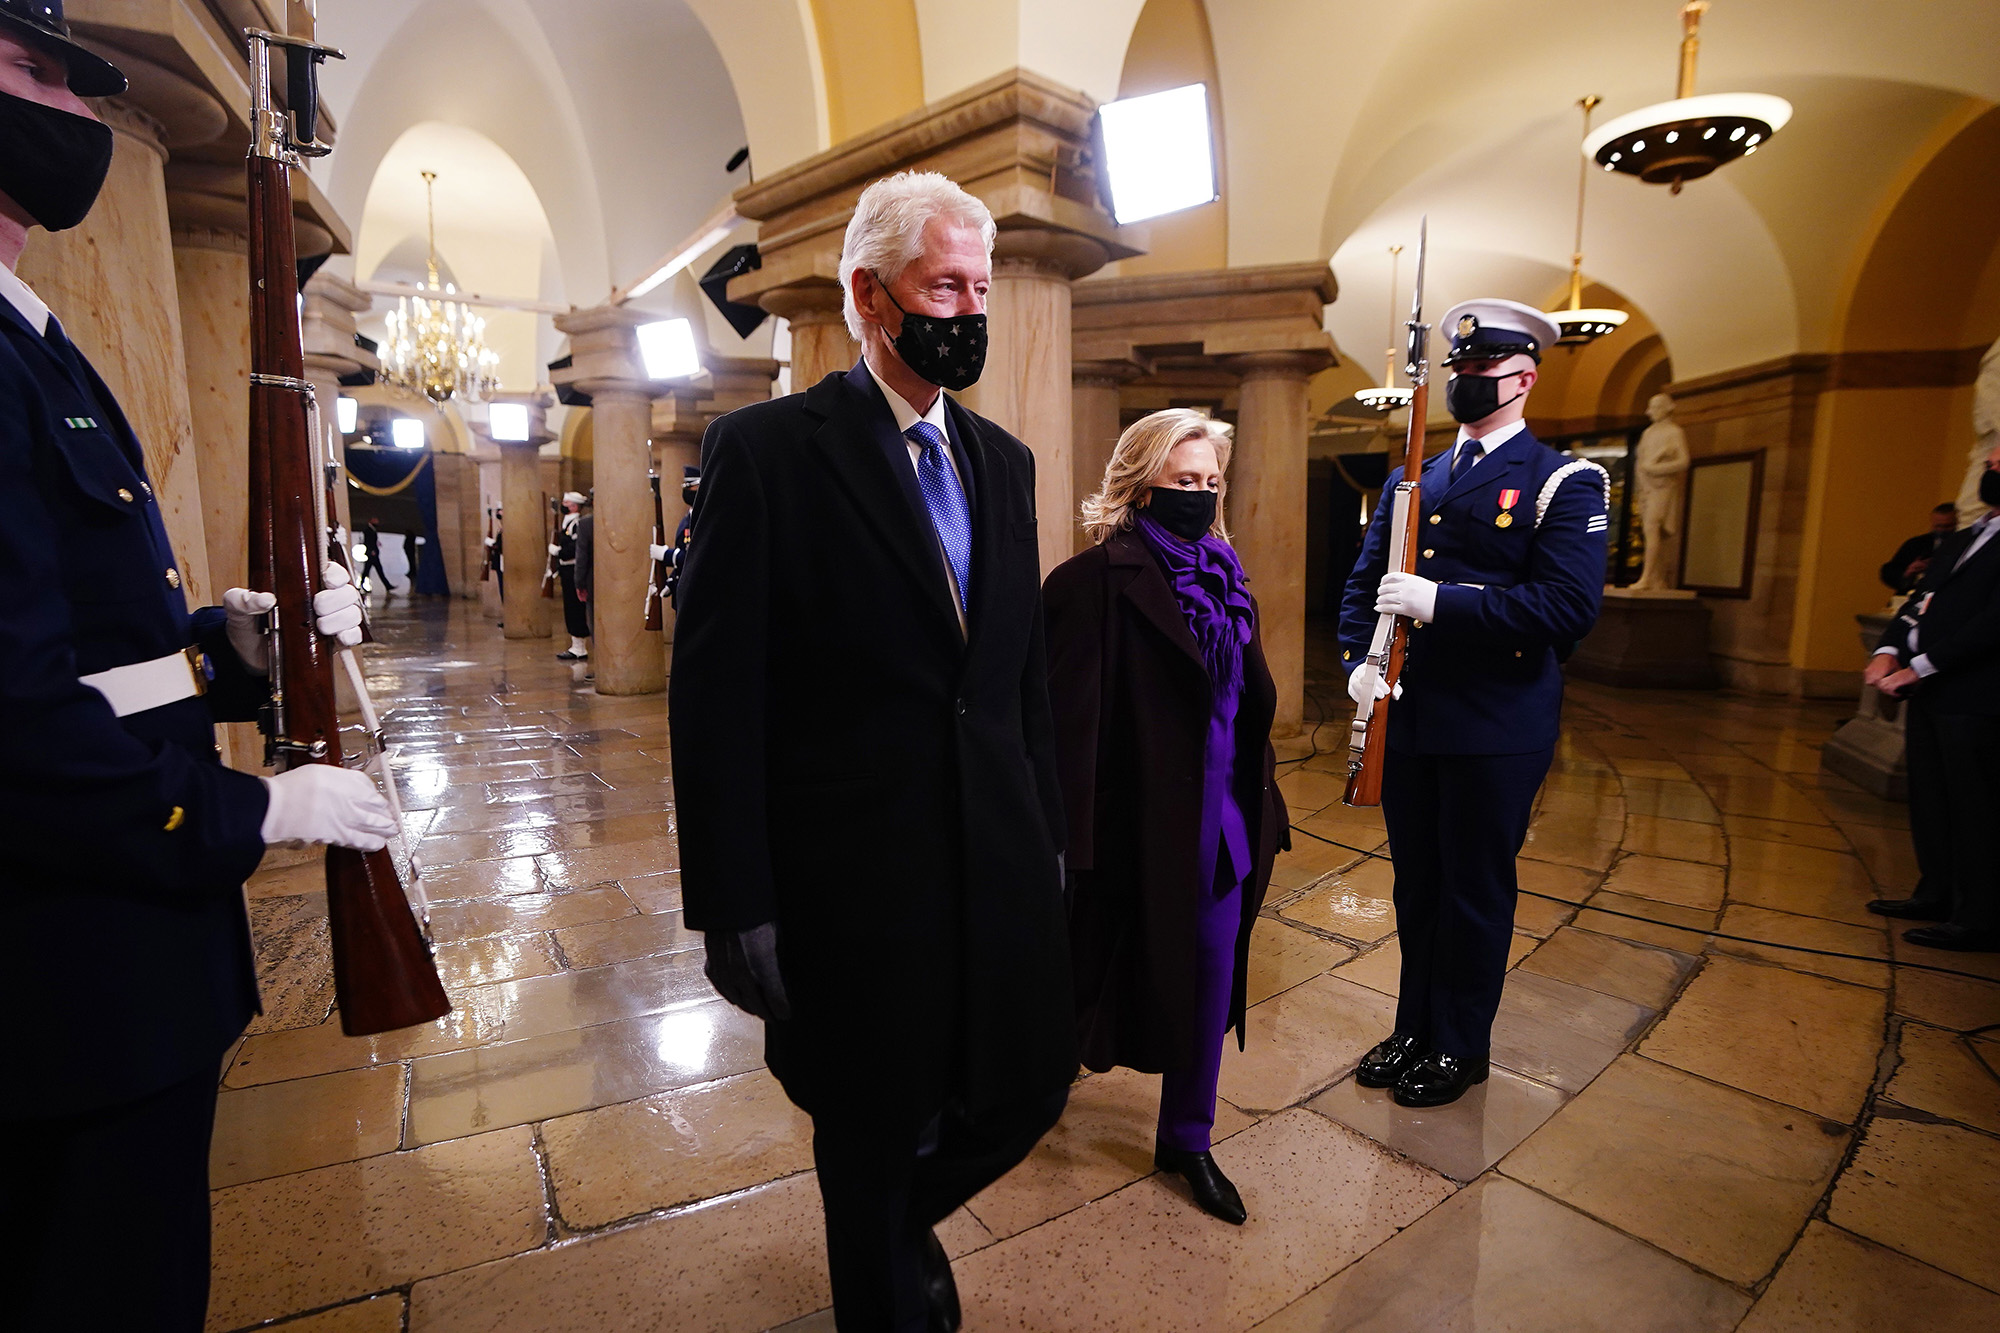 Former President Bill Clinton arrives with former Secretary of State Hillary Clinton before the inauguration of President-elect Joe Biden as the 46th president of the United States on the West Front of the Capitol in Washington on Jan. 20, 2021. (Jim Lo Scalzo/Pool, AFP via Getty Images)